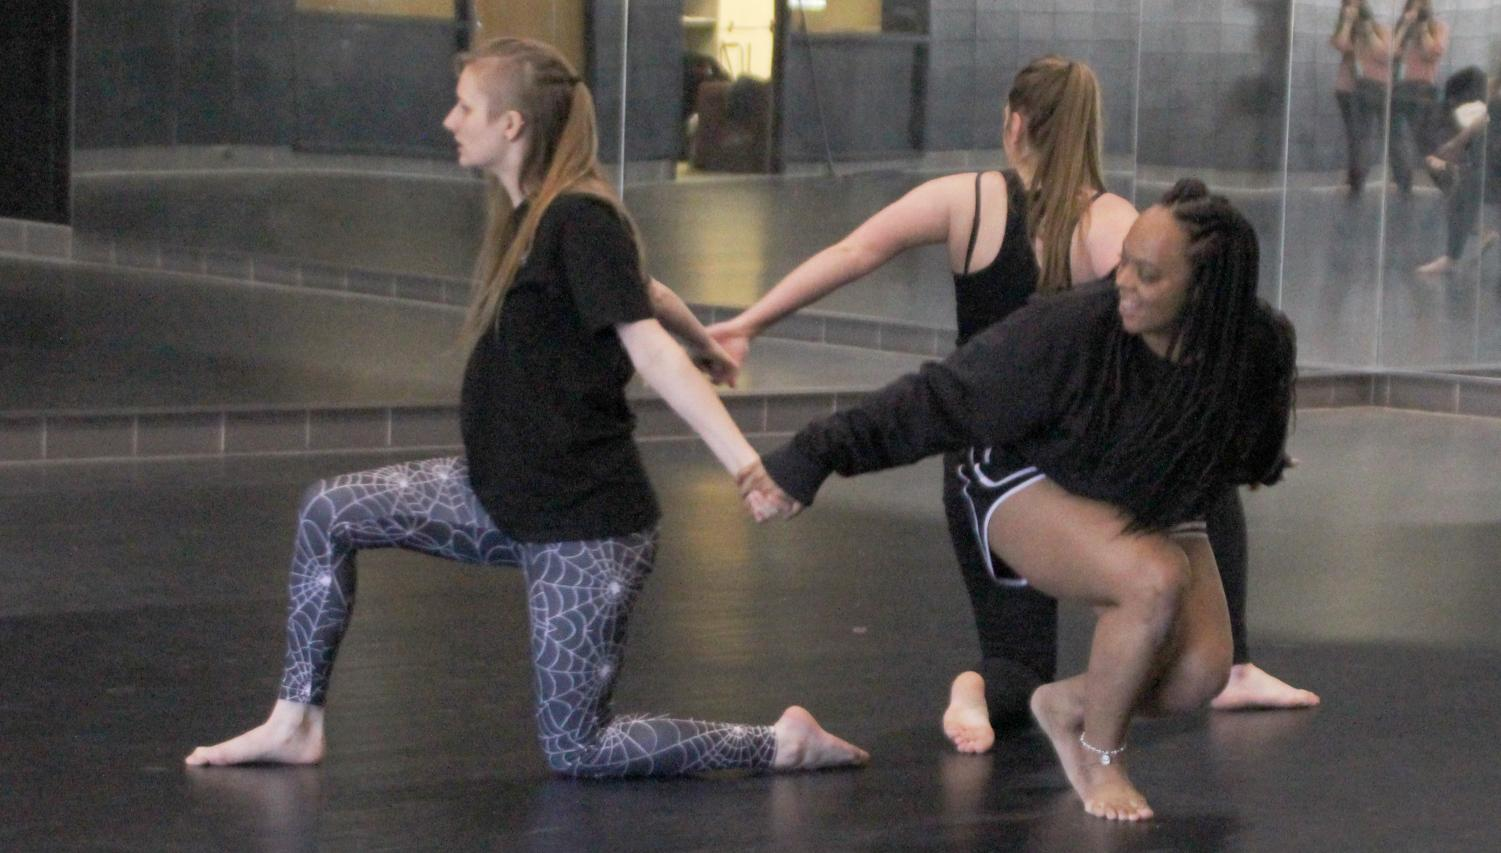 Members of Chi Tau Epsilon, the university's dance fraternity, practice a choreographed routine. Dance can increase levels of serotonin and help reduce stress.